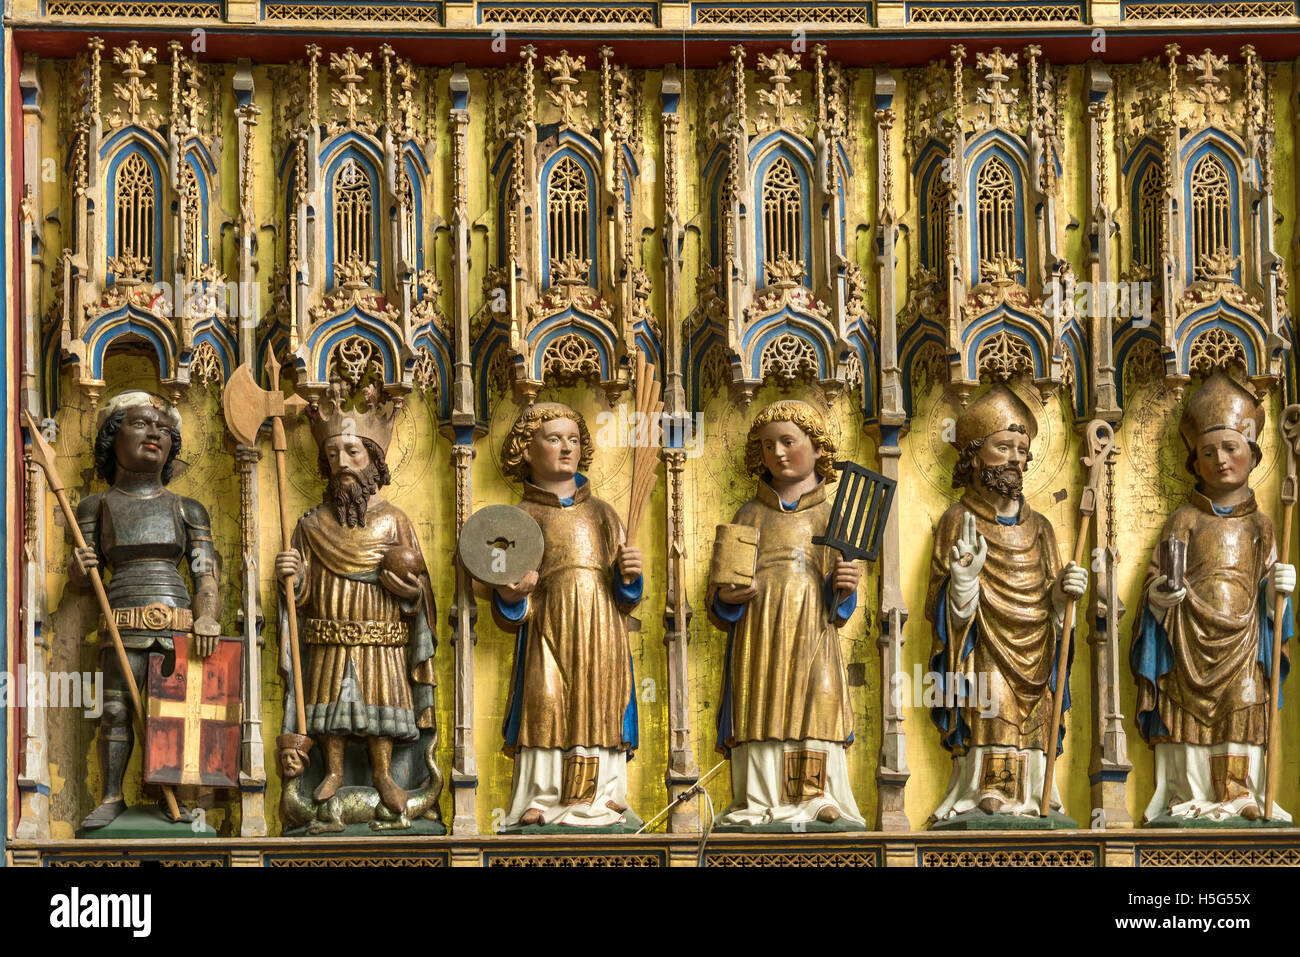 Church St. Nicholas altar detail , Hanseatic City of Wismar, Mecklenburg-Vorpommern, Germany Stock Photo